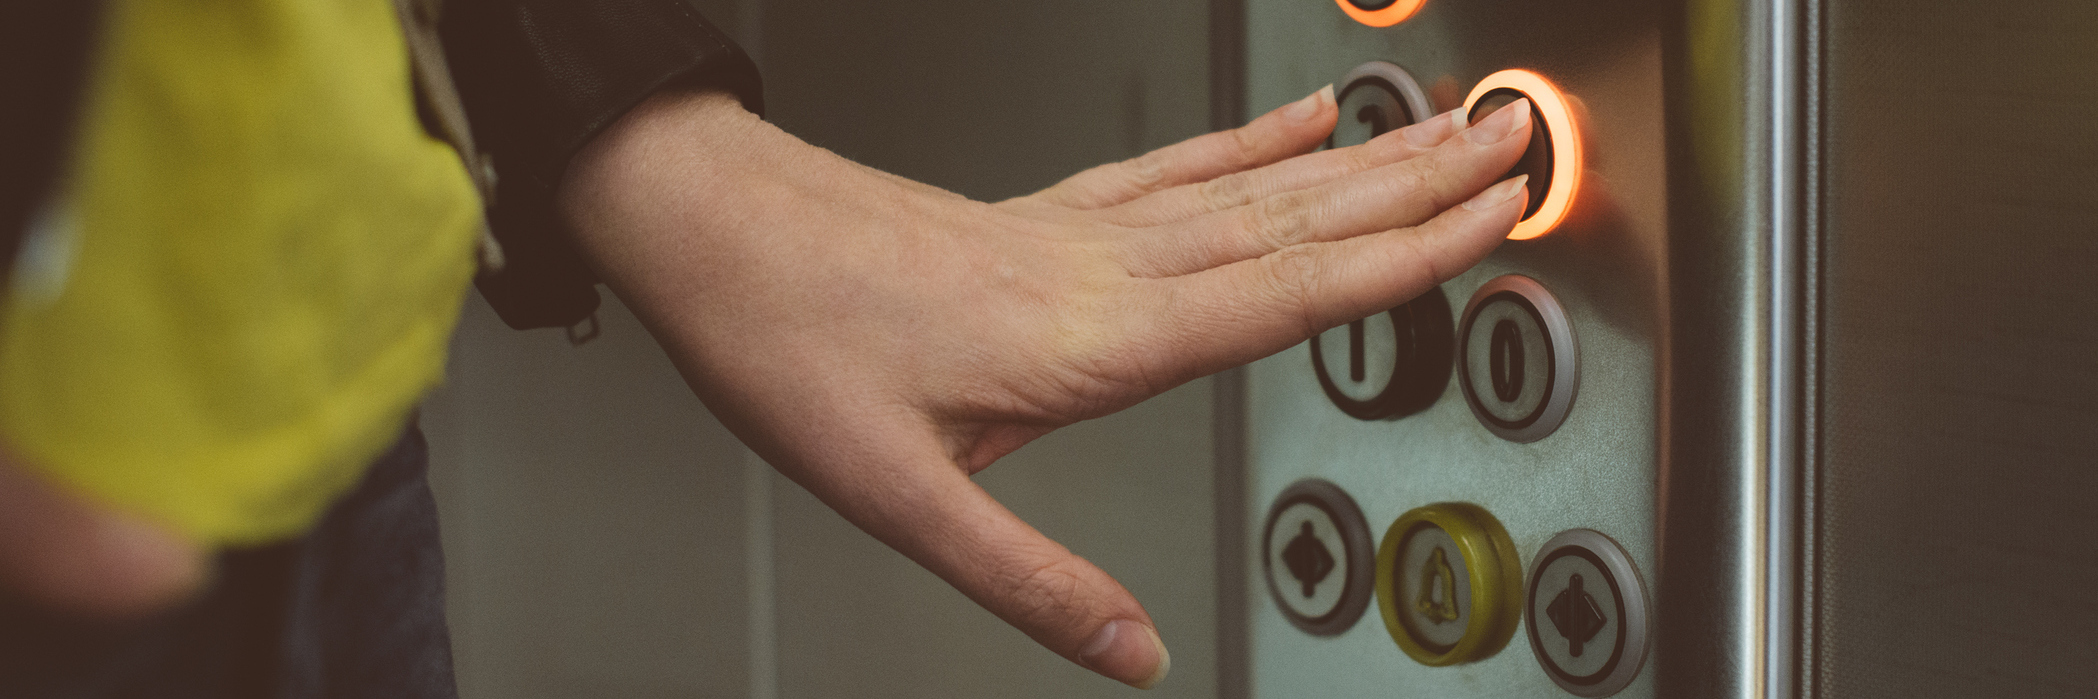 woman pressing buttons in an elevator